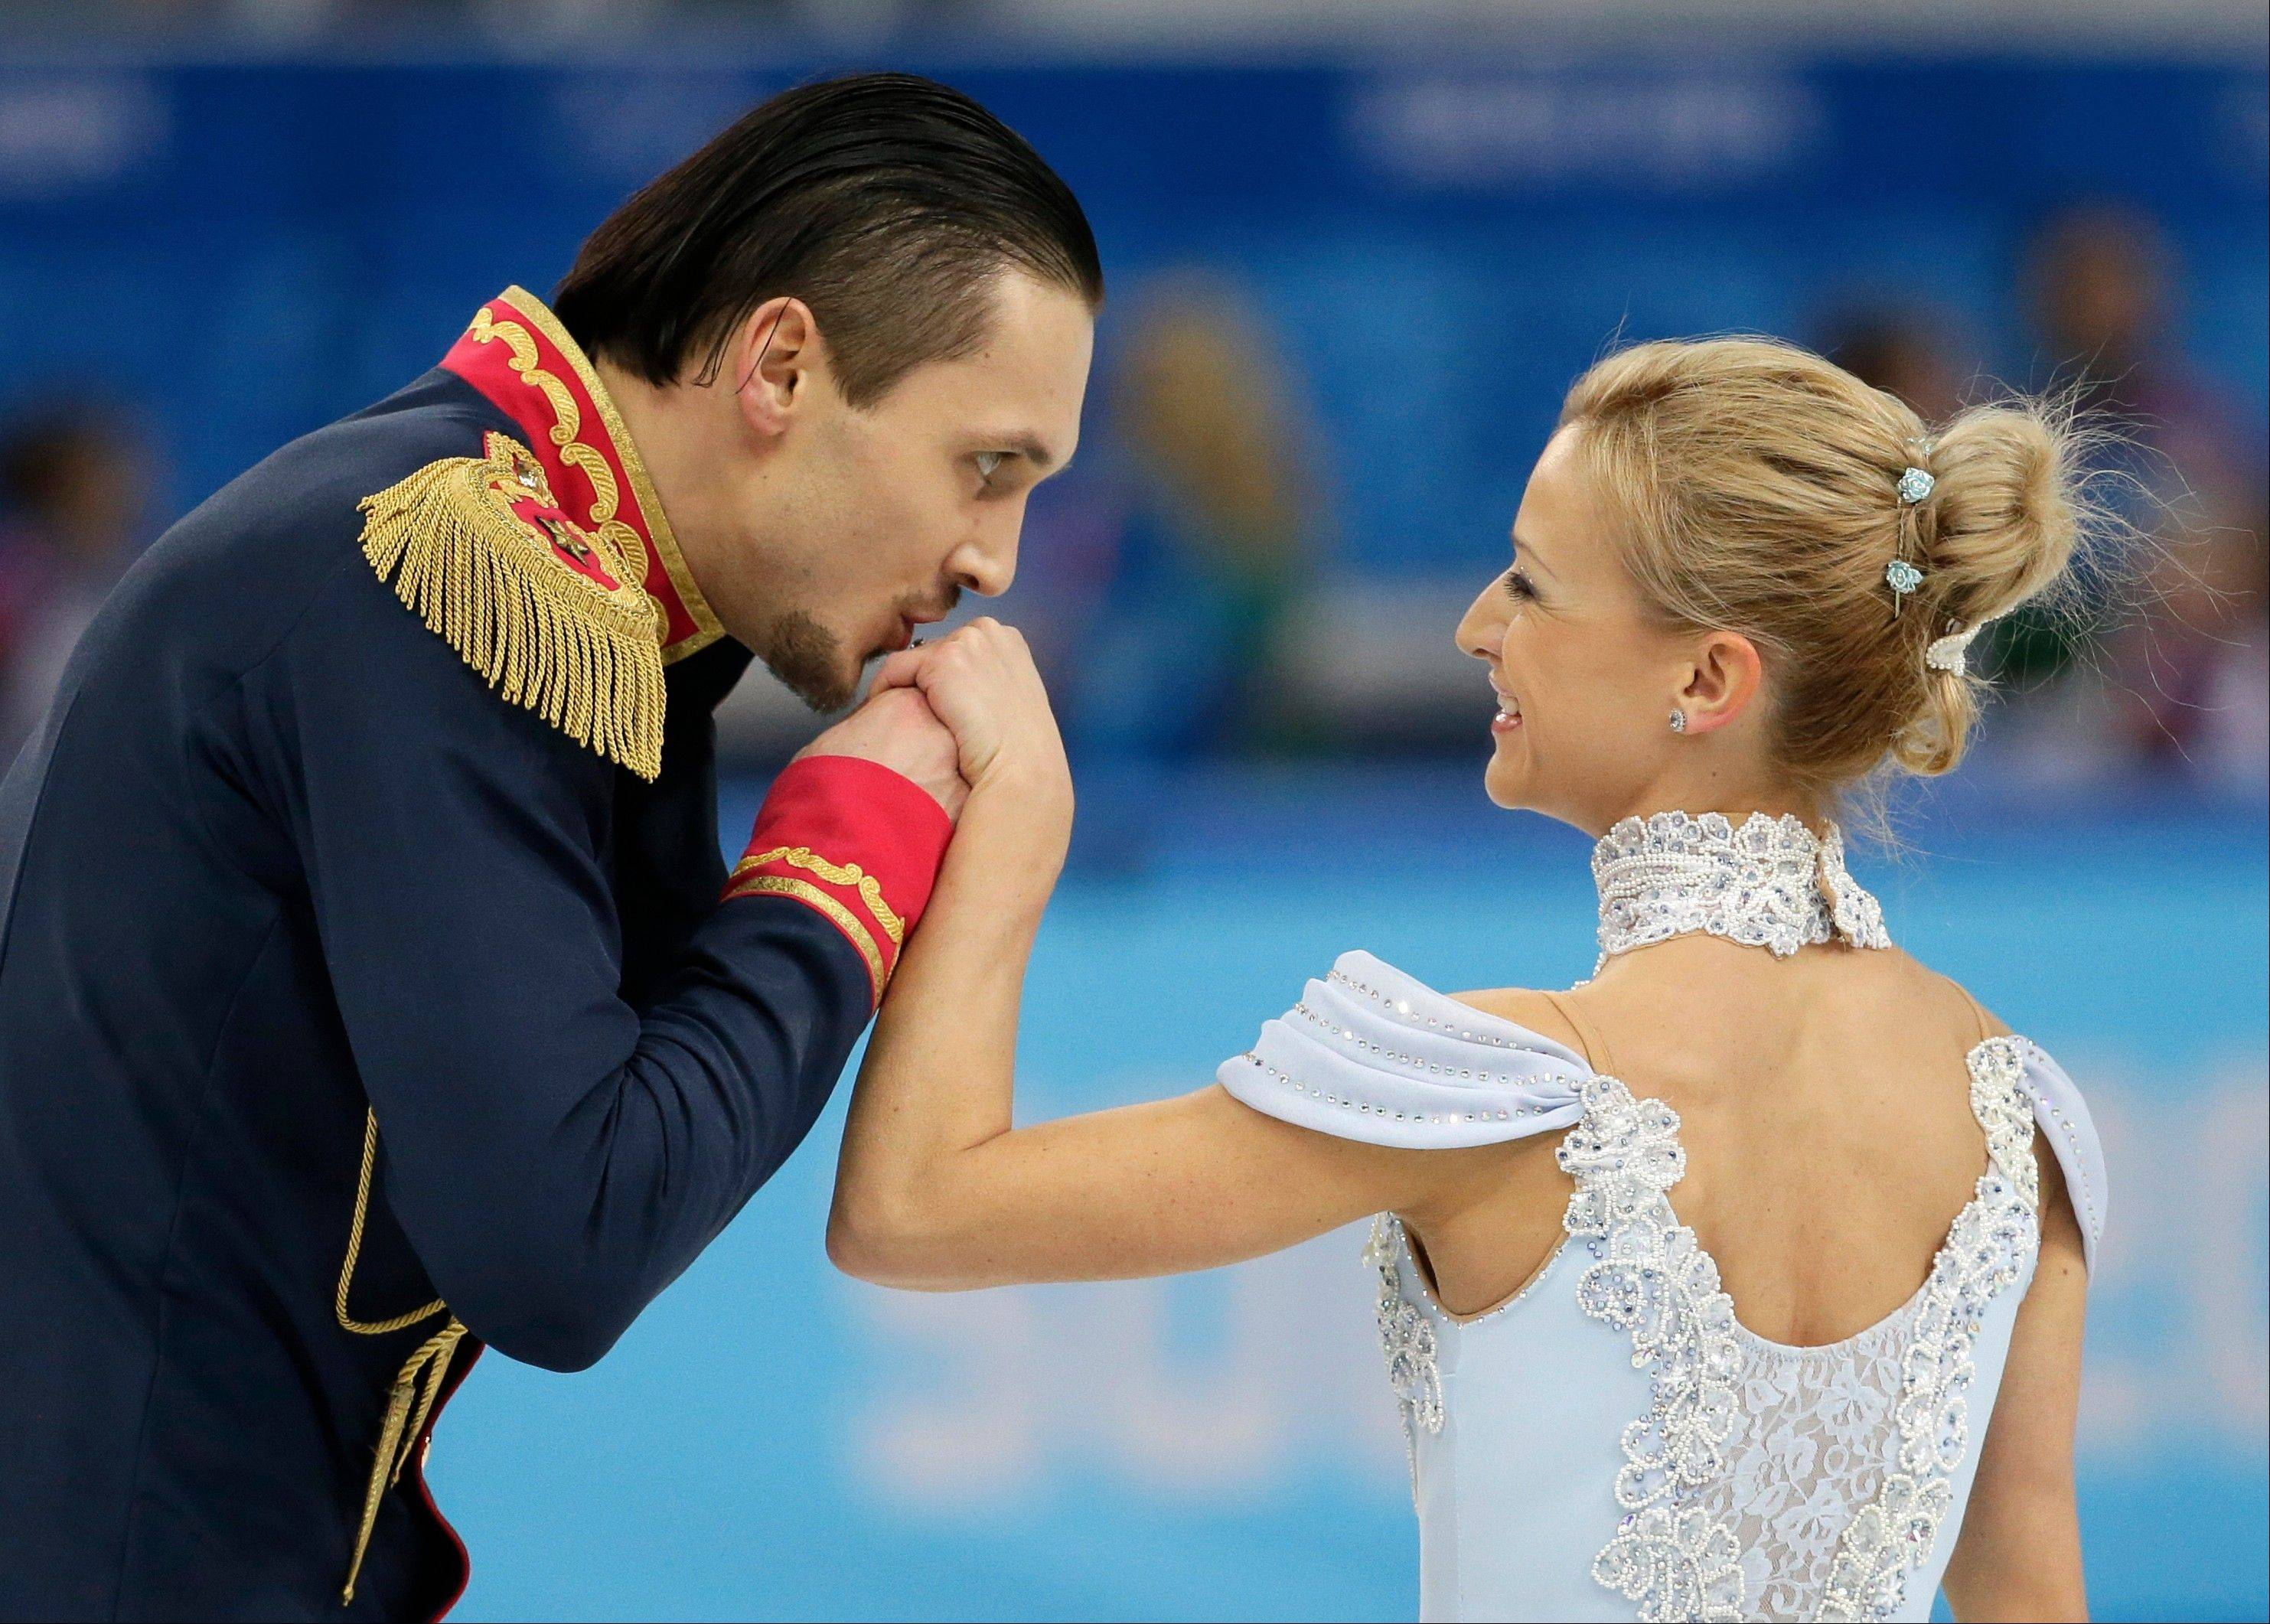 Russia's Maxim Trankov kisses Tatiana Volosozhar's hand after competing in the team pairs short program figure skating competition at the Iceberg Skating Palace.